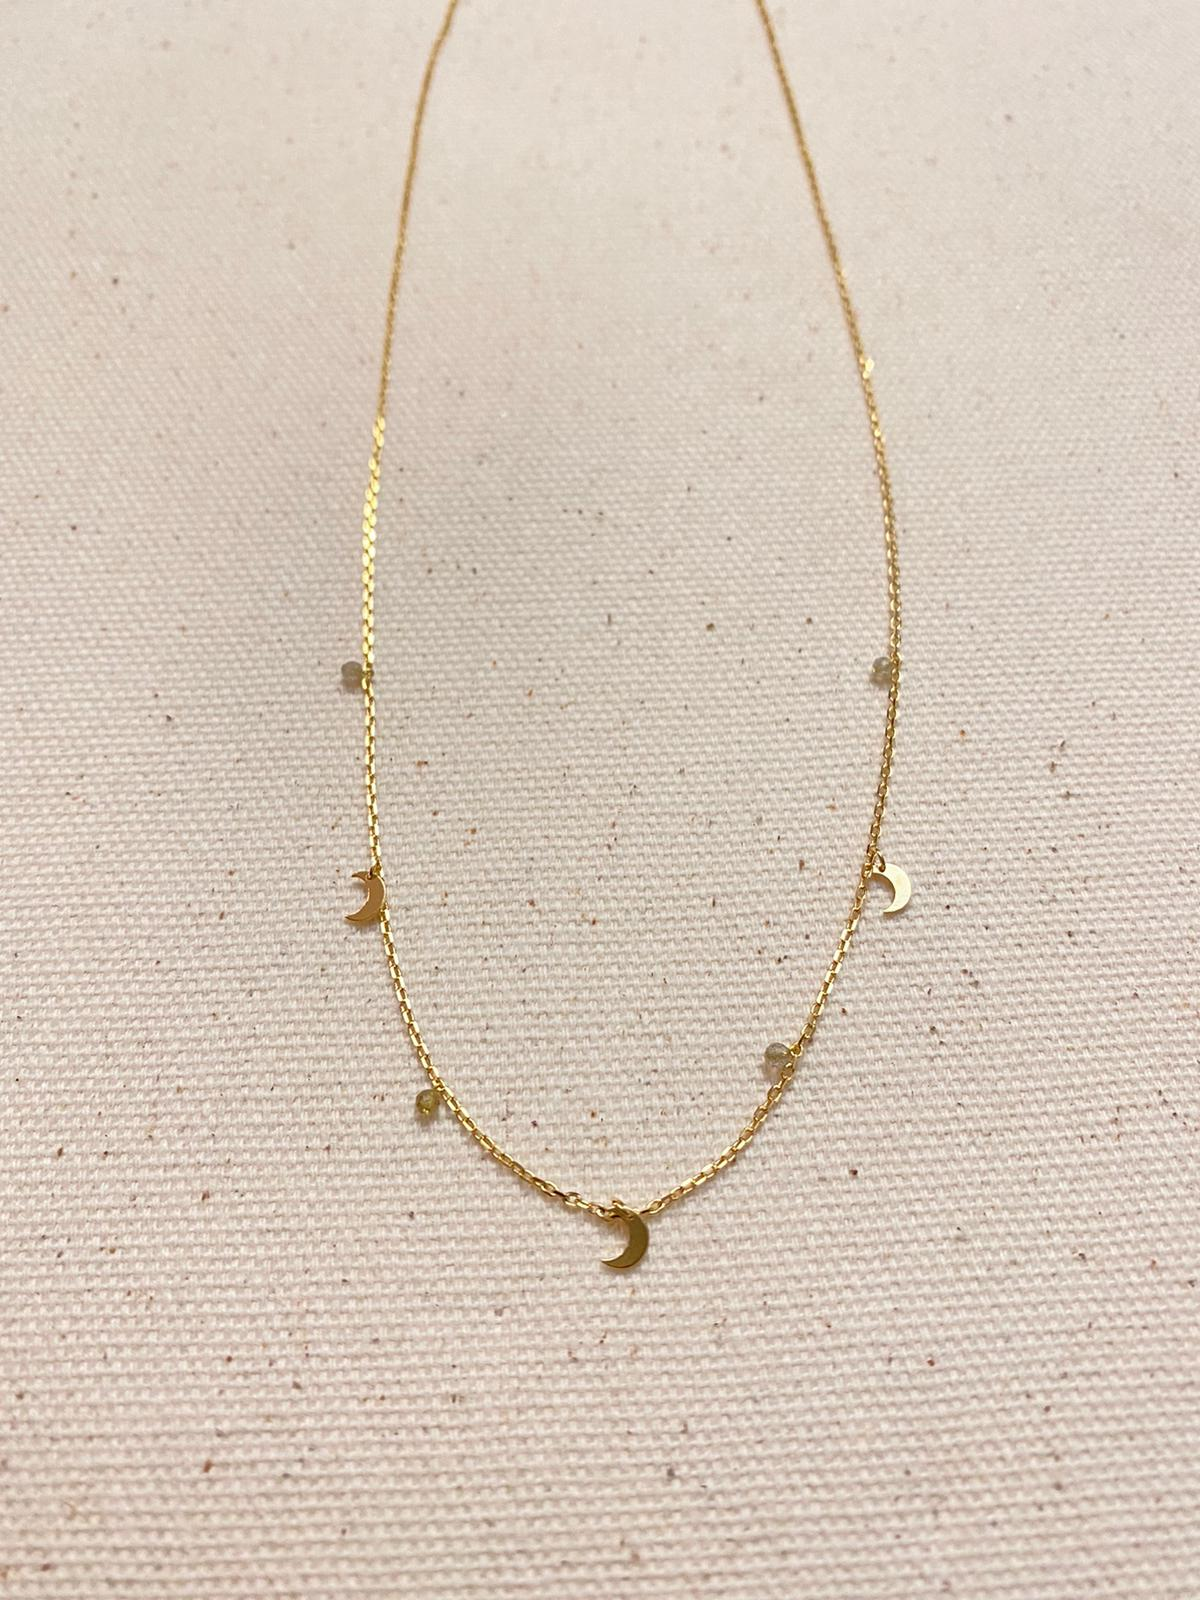 Dainty Moon Charm Necklace